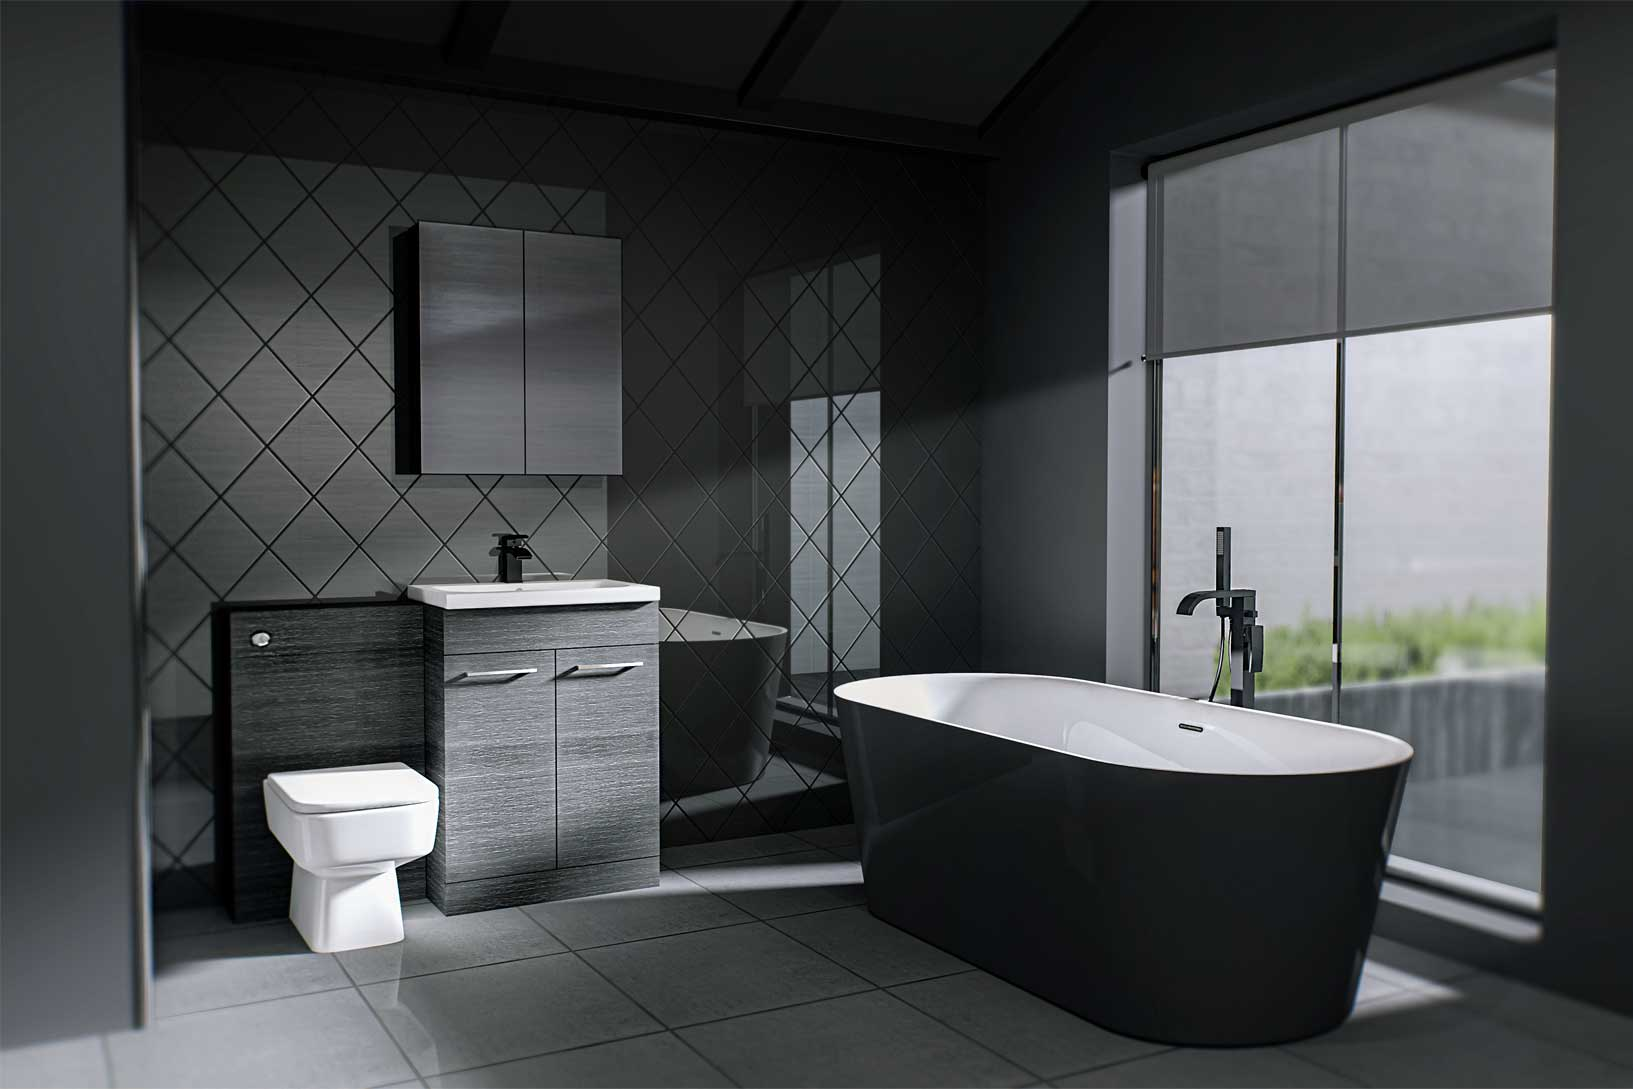 Wholesale Domestic Bathroom Blog Getting The Most Out Of Black Friday With Wholesale Domestic Bathrooms